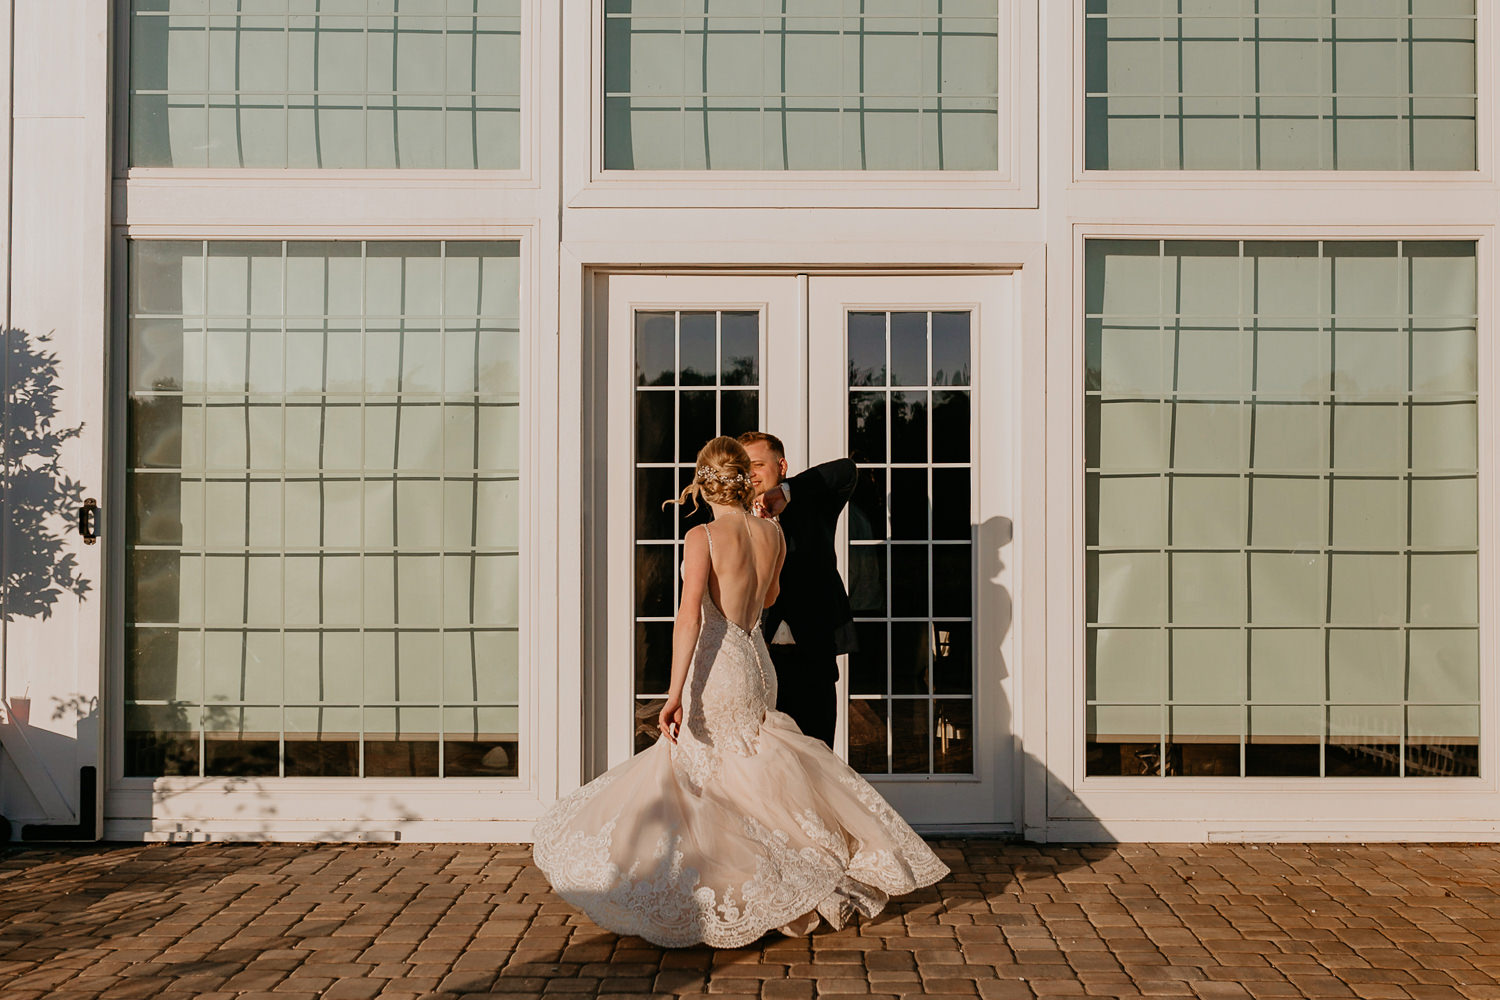 groom spinning bride, her dress dancing in the air in front of farm barn doors